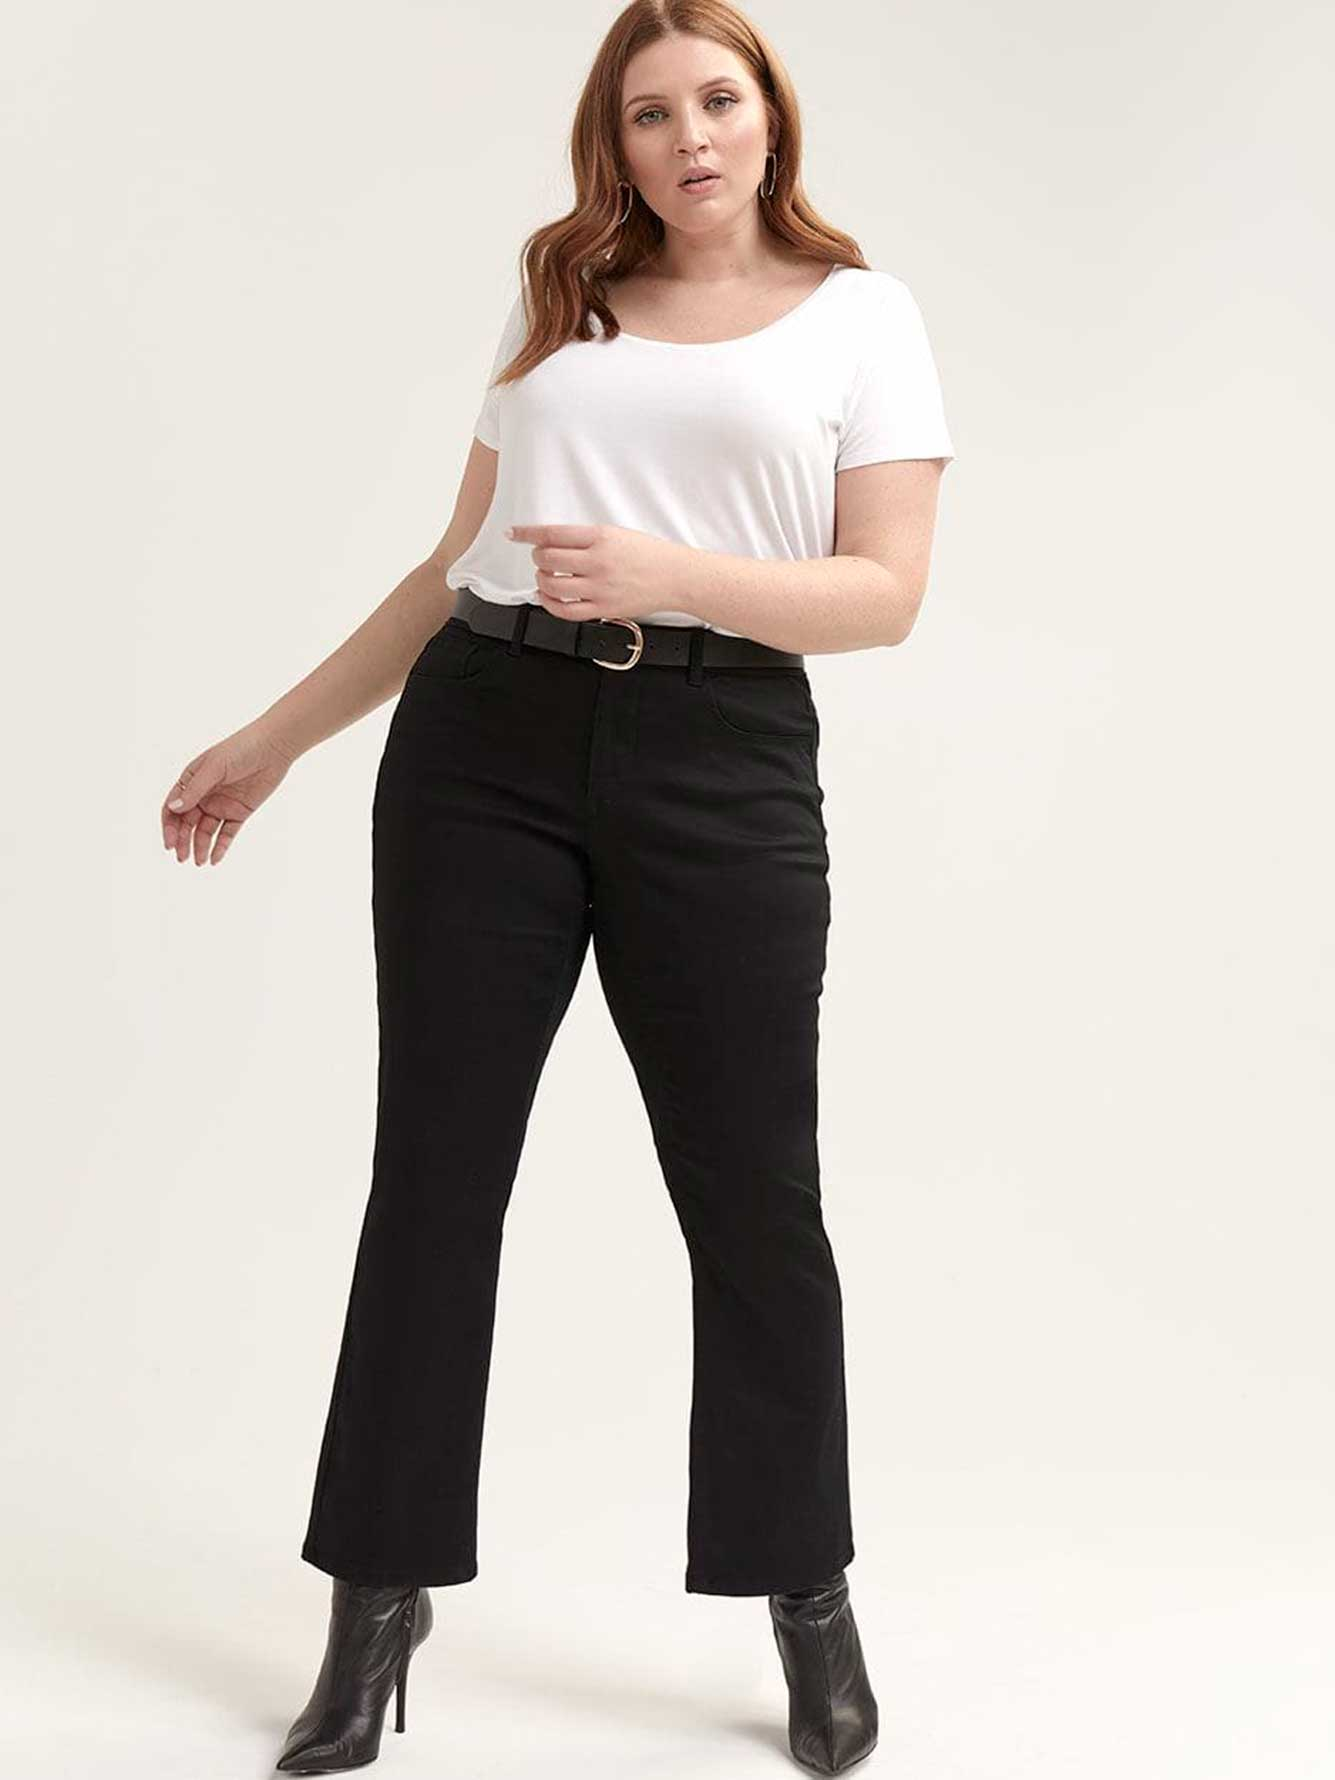 PETITE Authentic Barely Bootcut Black Jean - L&L